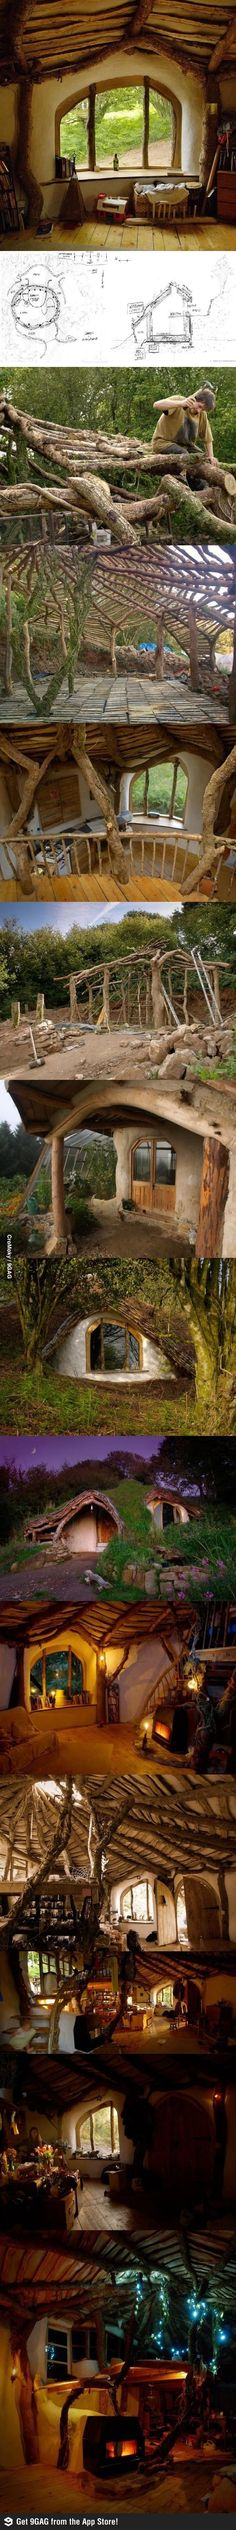 How to build a HOBBIT house. Umm awesome